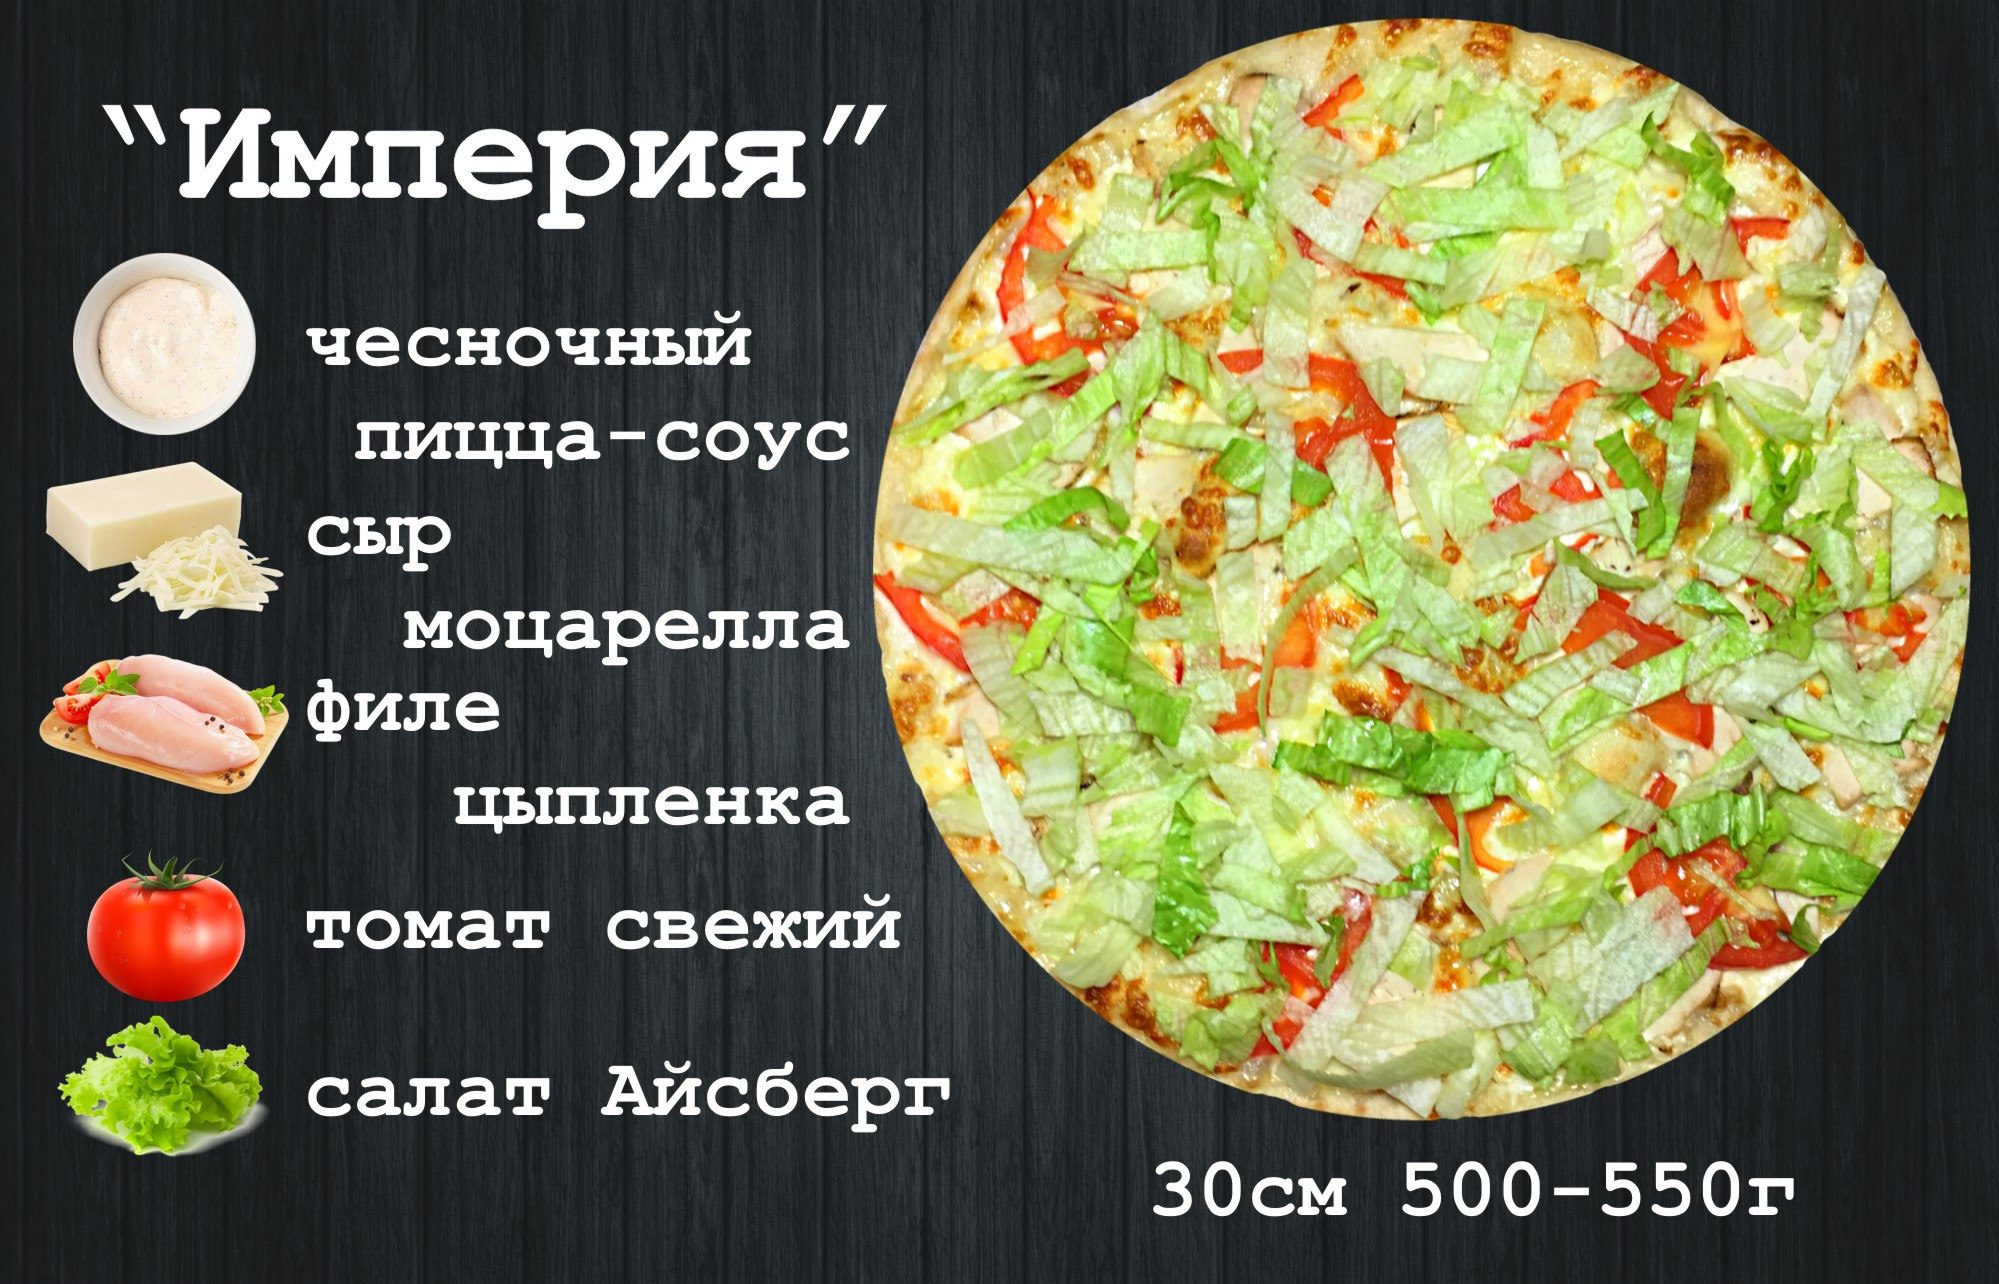 Империя_pizza_urbanfood_minsk